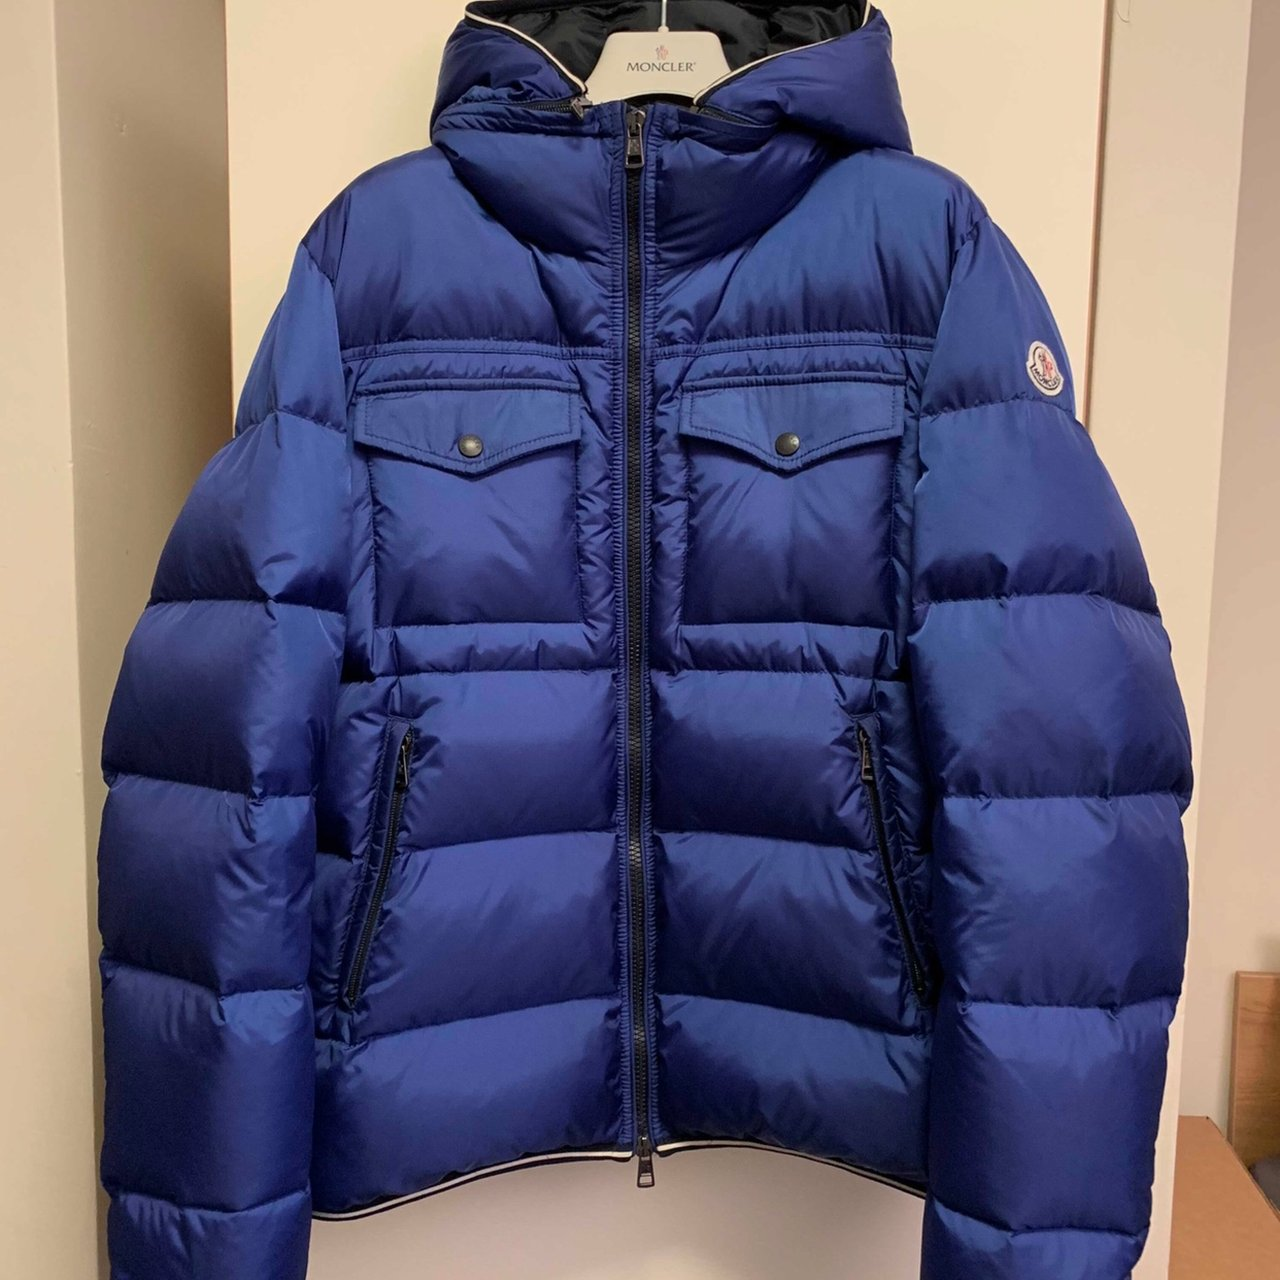 fee8480e7 Mens Moncler jacket Size  3 Fit  medium large Looking to - Depop